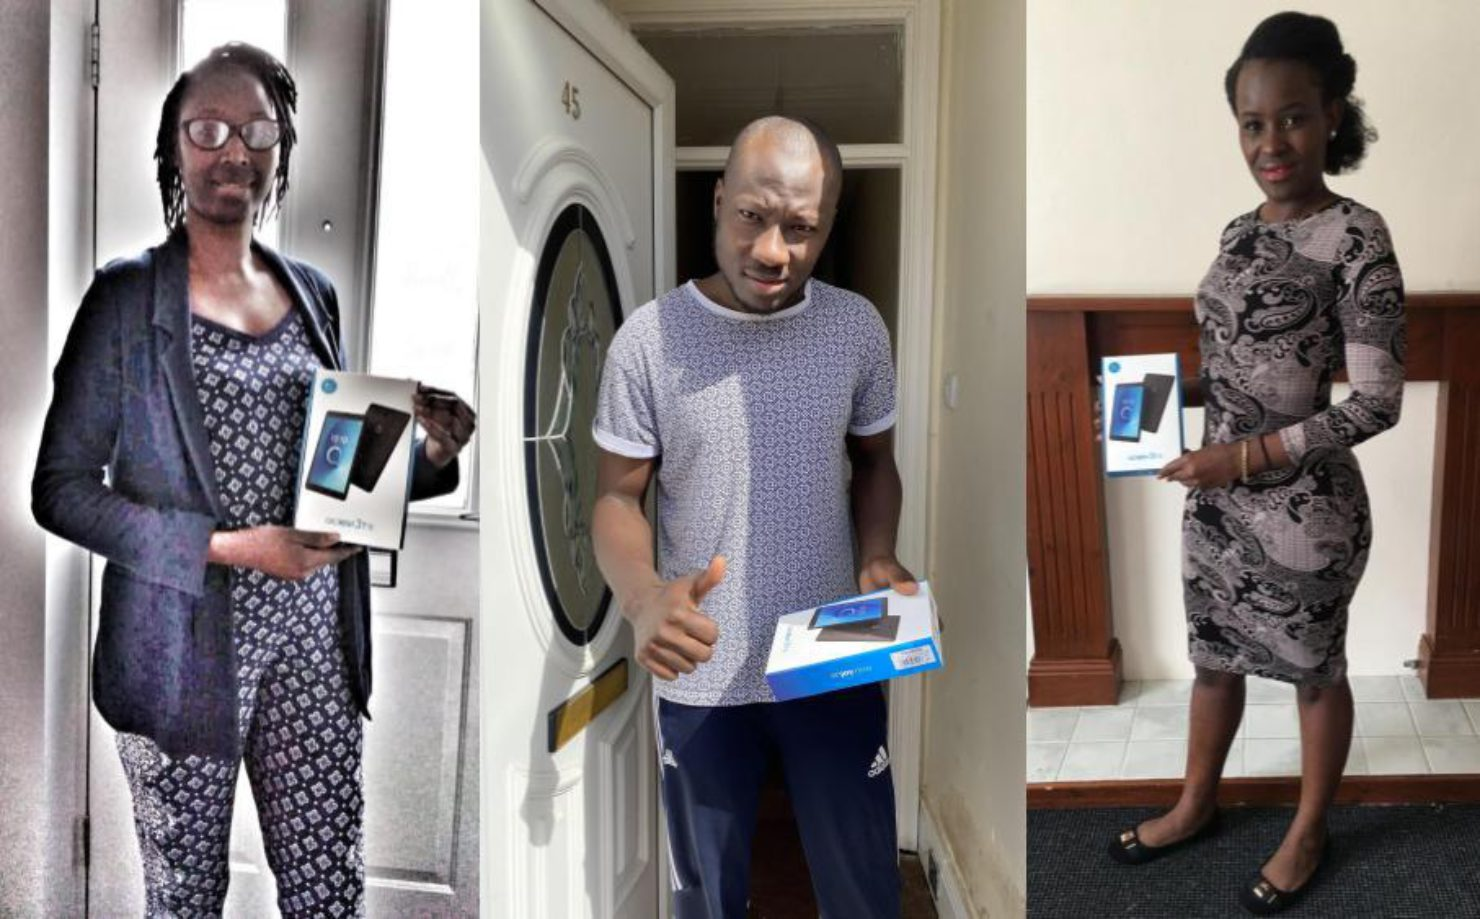 3 photos of people holding new tablets from Devices Dot Now